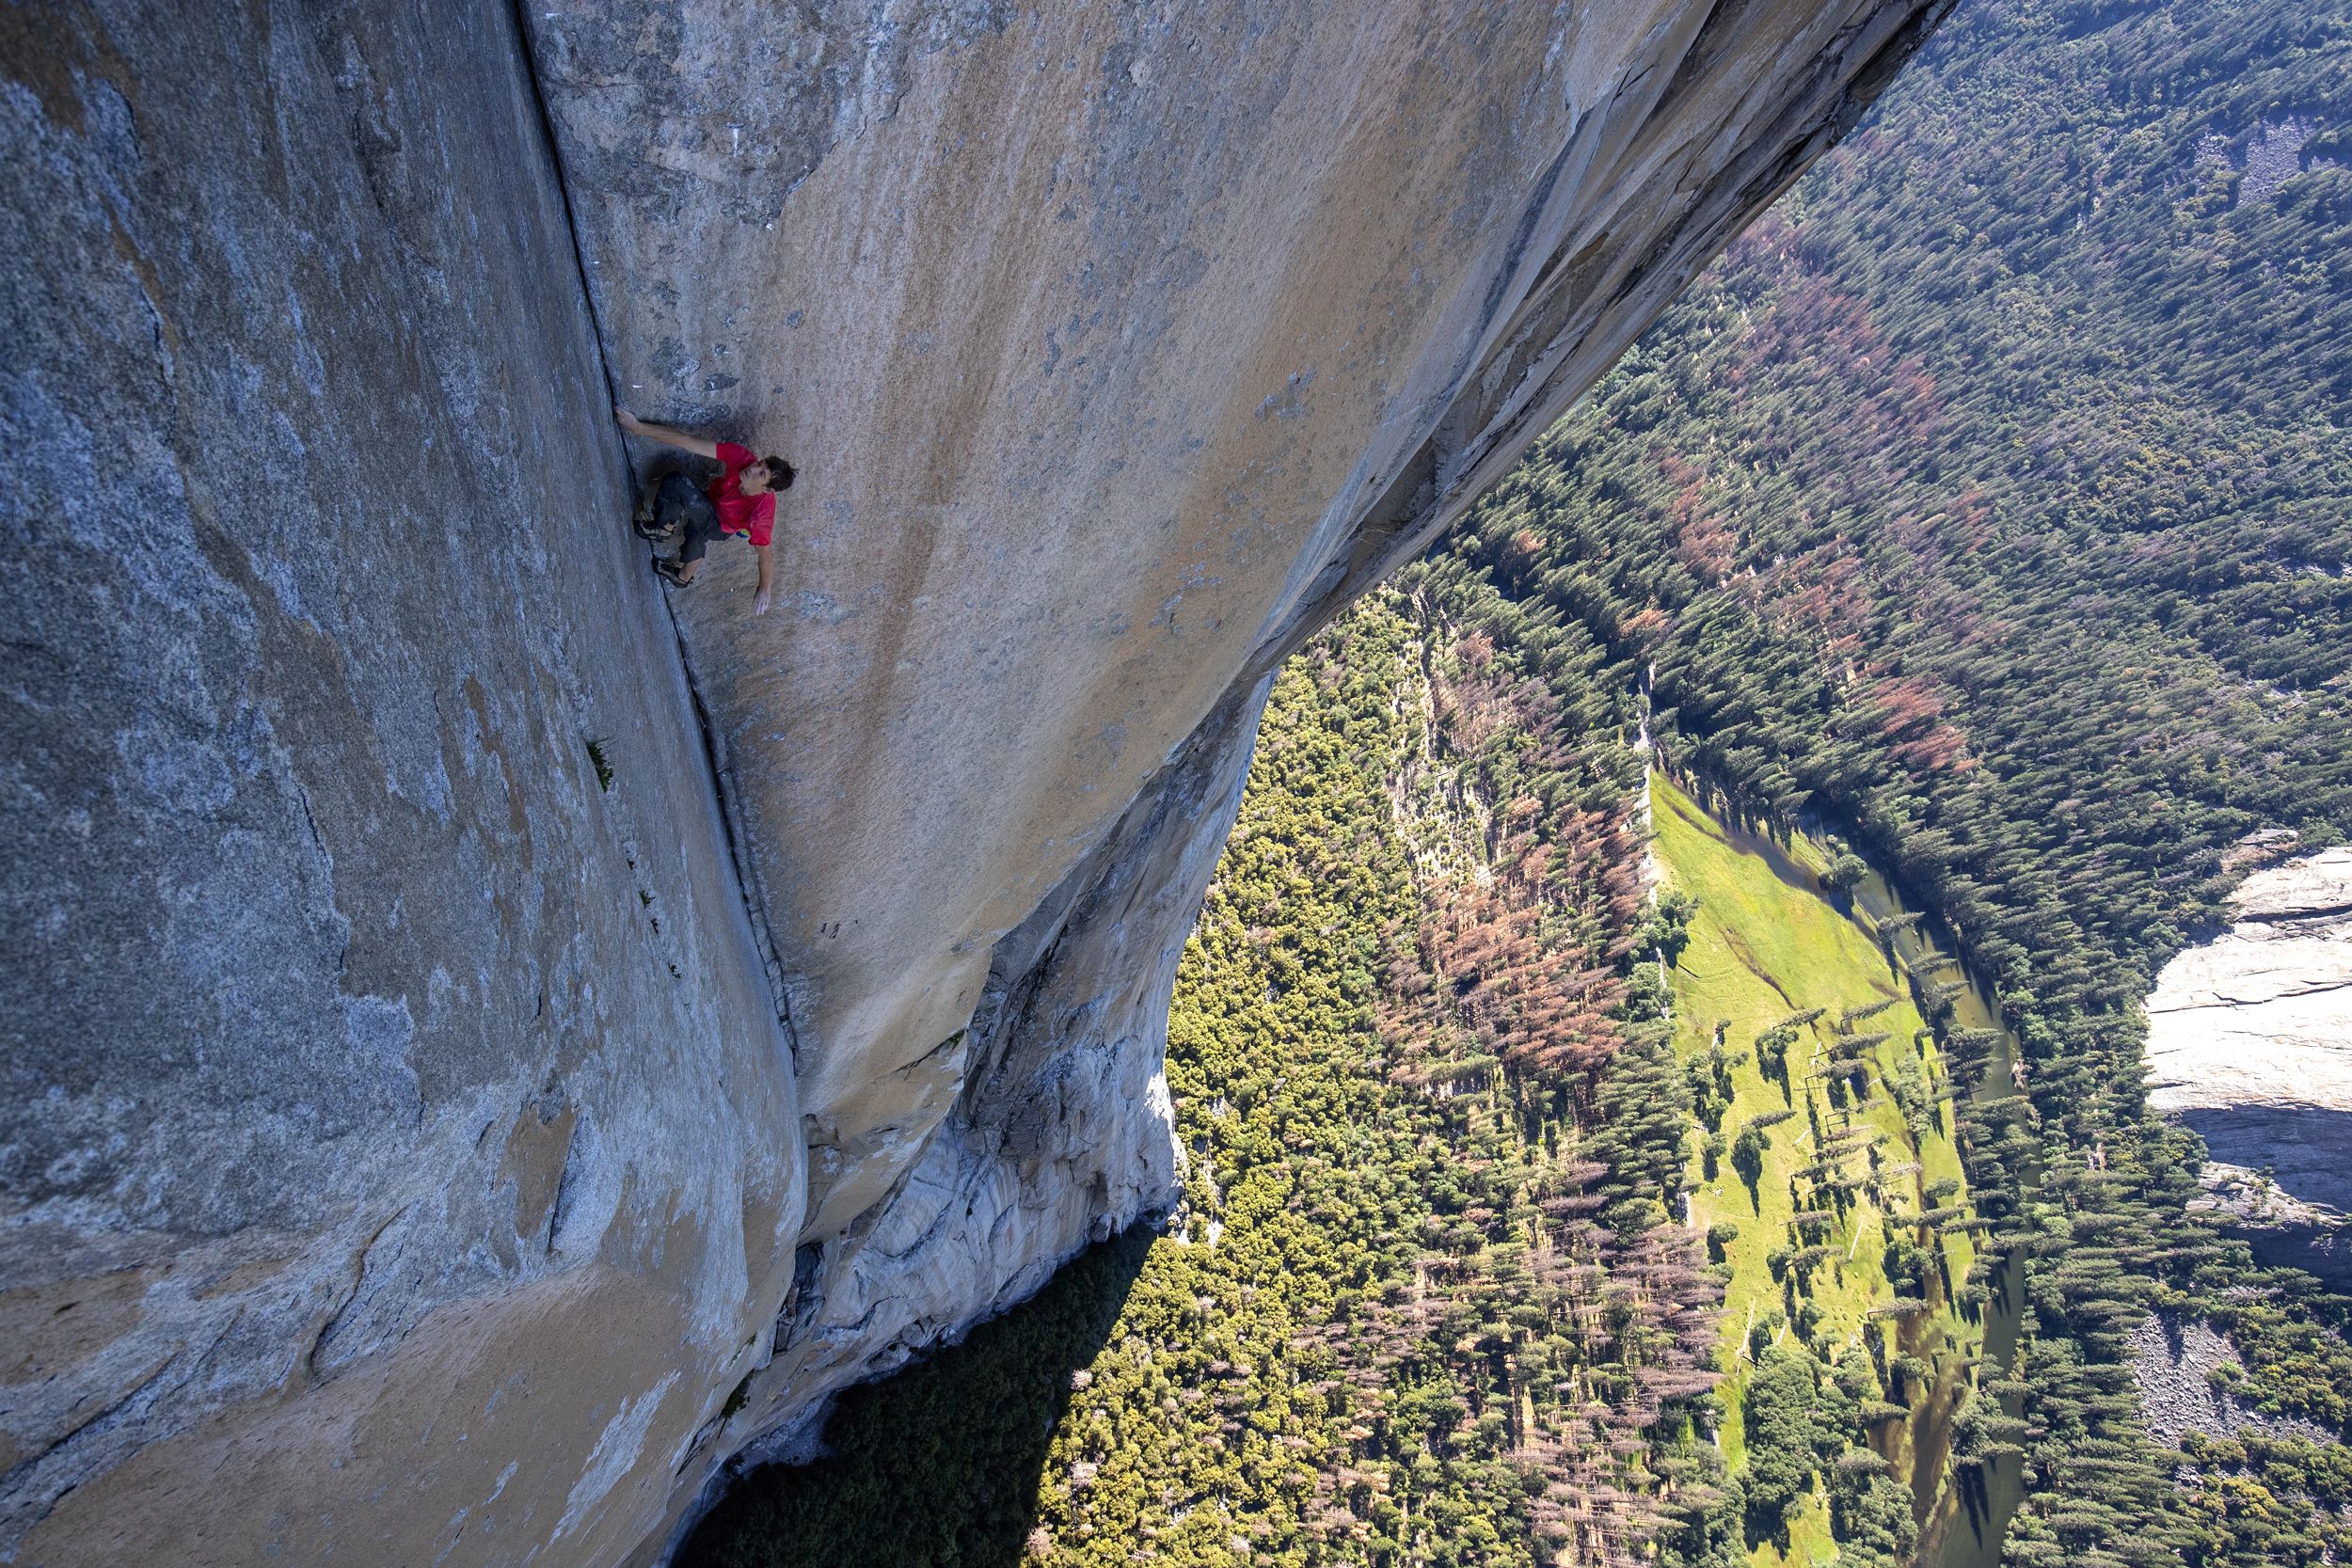 Alex Honnold climbing 'El Cap' in Jimmy Chin and Chai Vasarhelyi's 'Free Solo'. Photo courtesy of National Geographic.